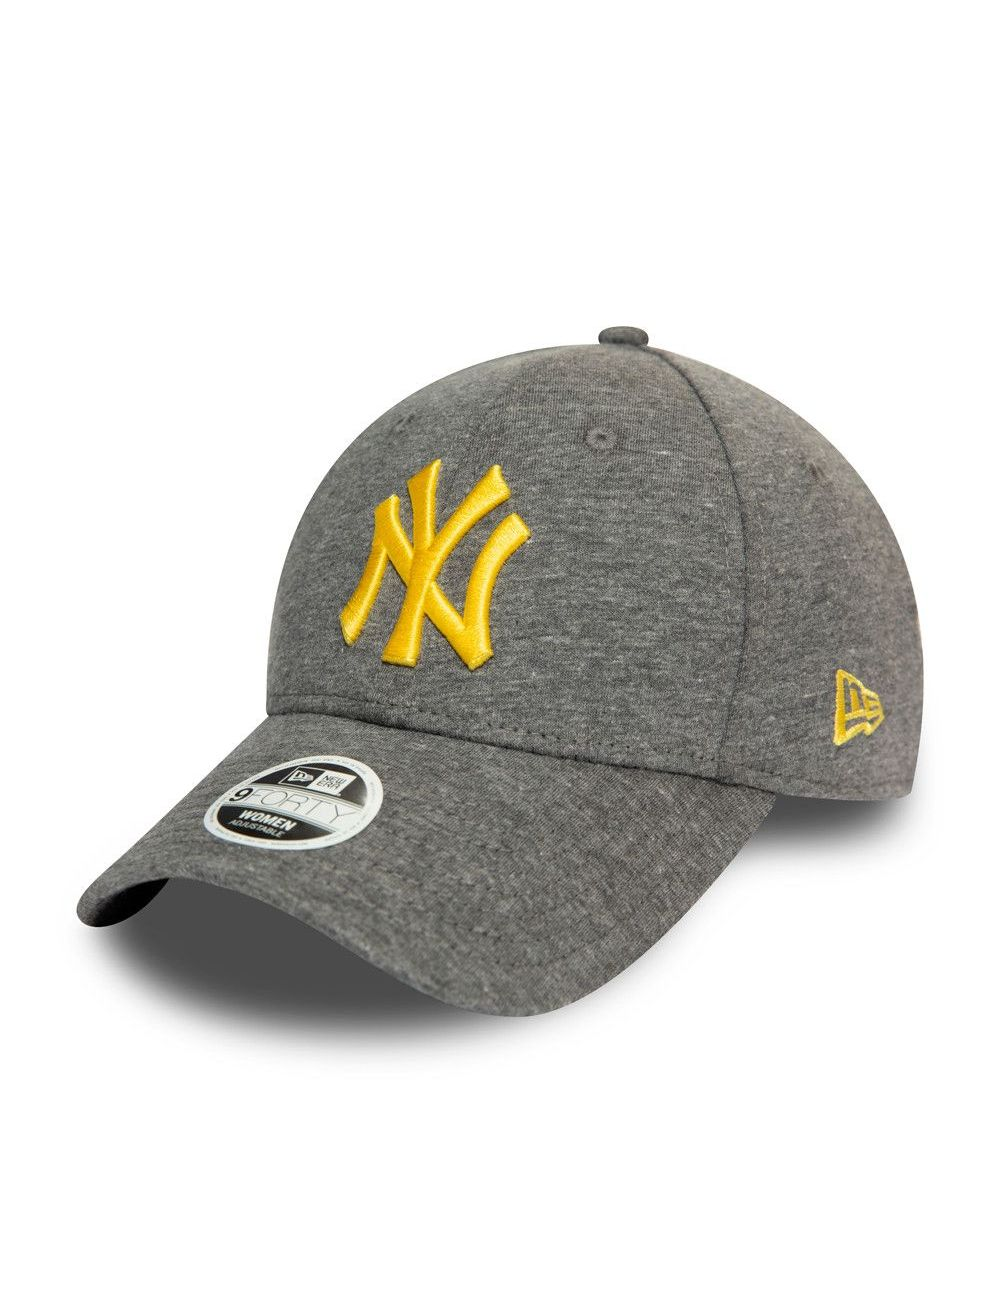 Casquette Femme New Era 9FORTY Jersey New York Yankees charcoal 12380752